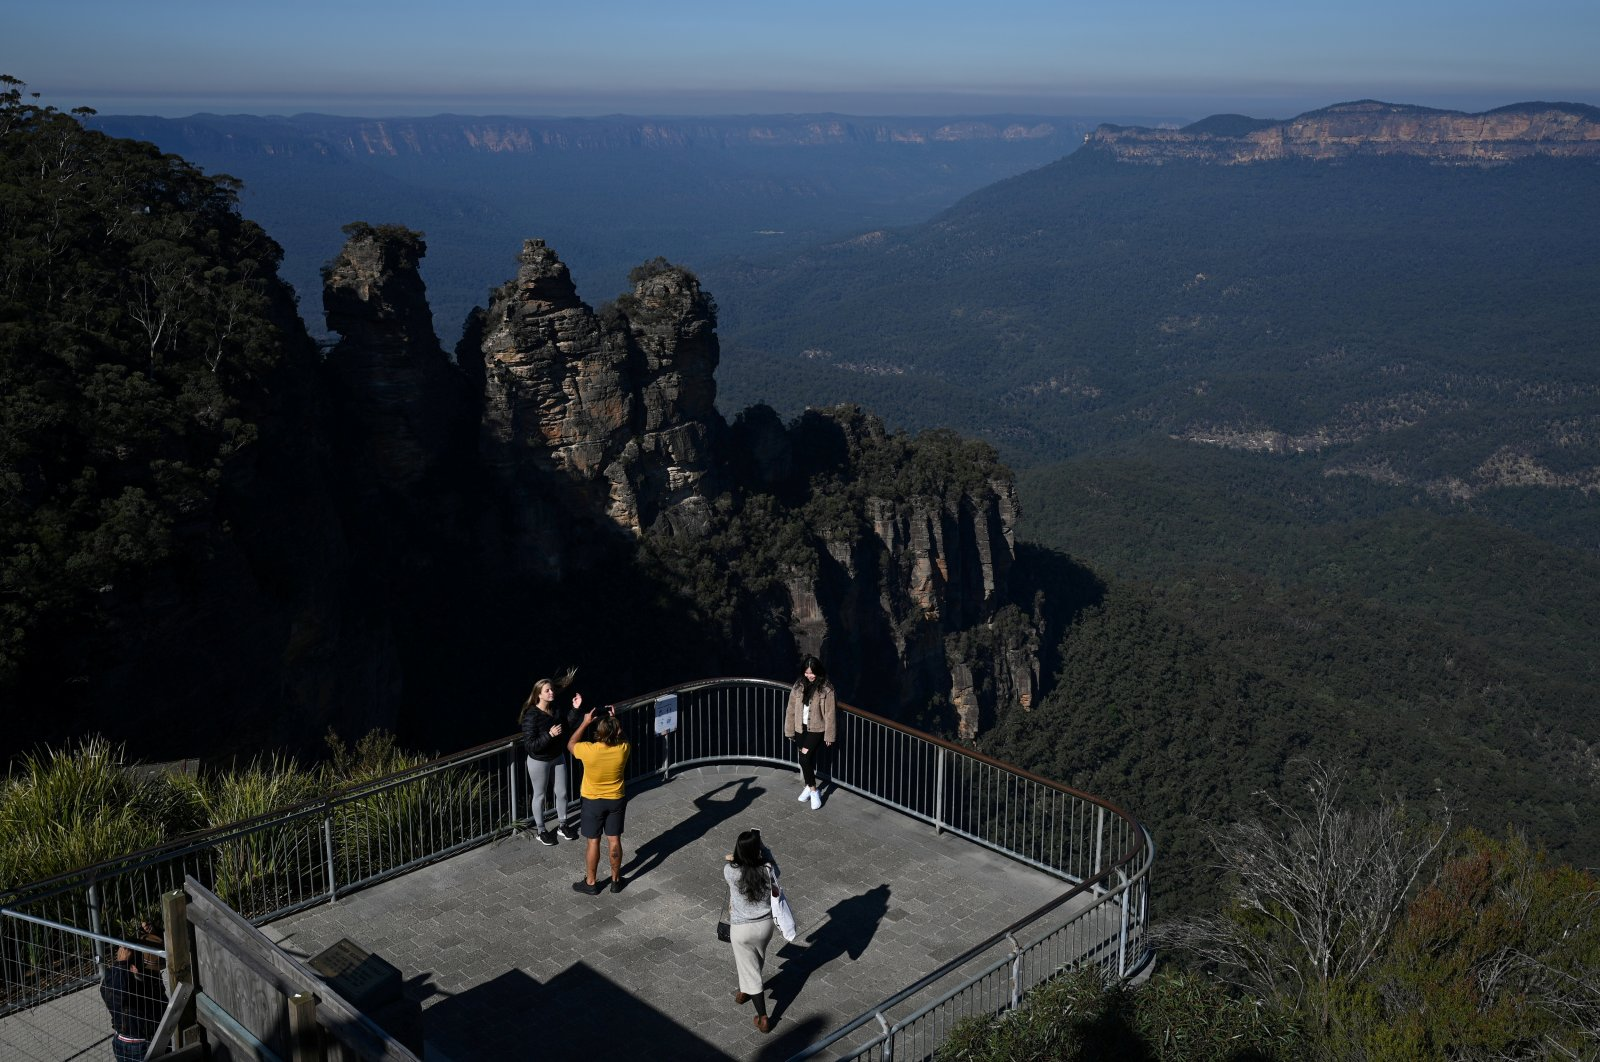 Tourists pose for photos at the Three Sisters rock formation in the Blue Mountains National Park in the wake of regional travel reopening as COVID-19 restrictions are eased, New South Wales, Katoomba, Australia, June 5, 2020.  (Reuters)